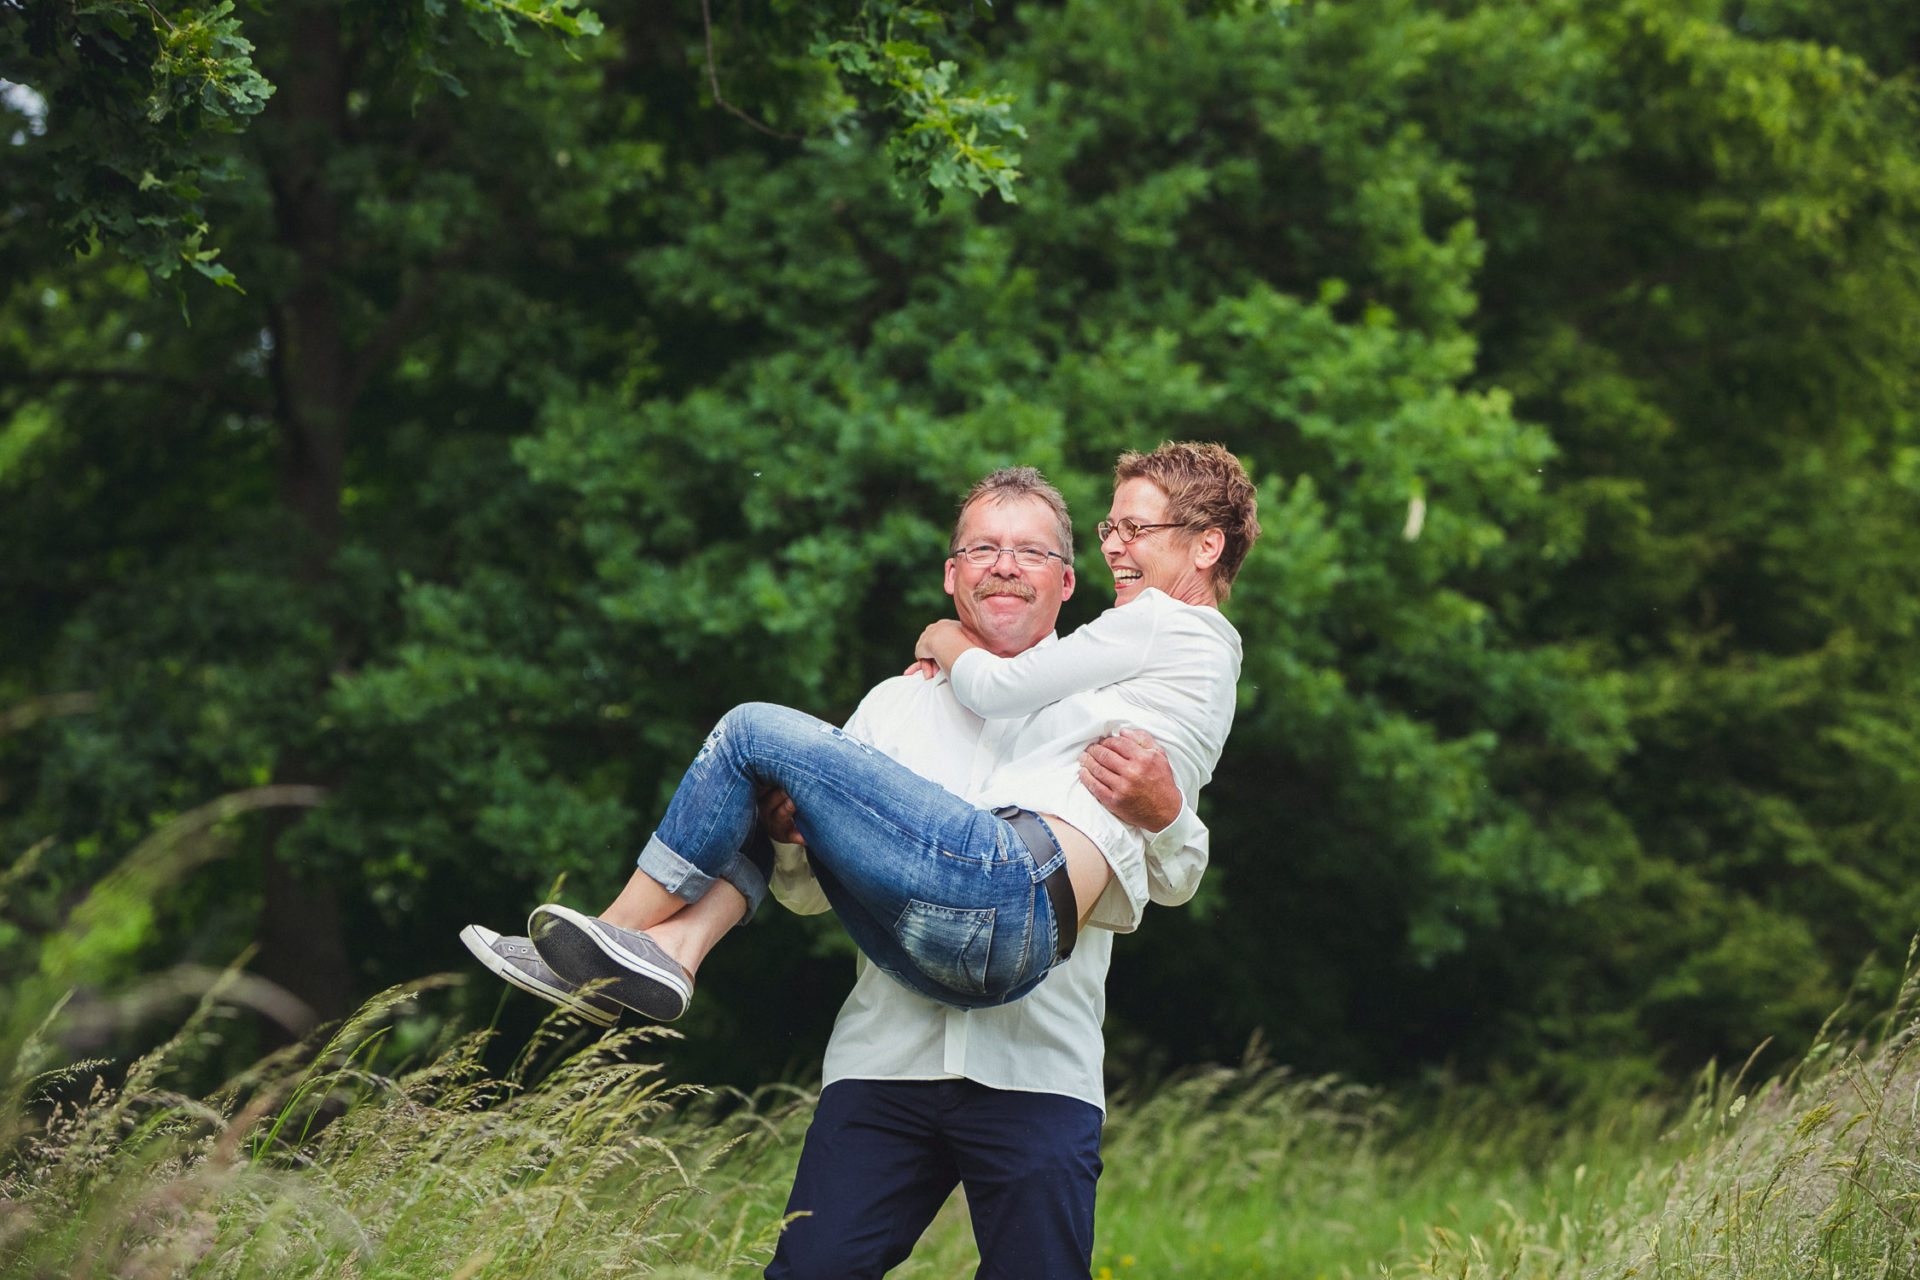 Familienshooting-2710